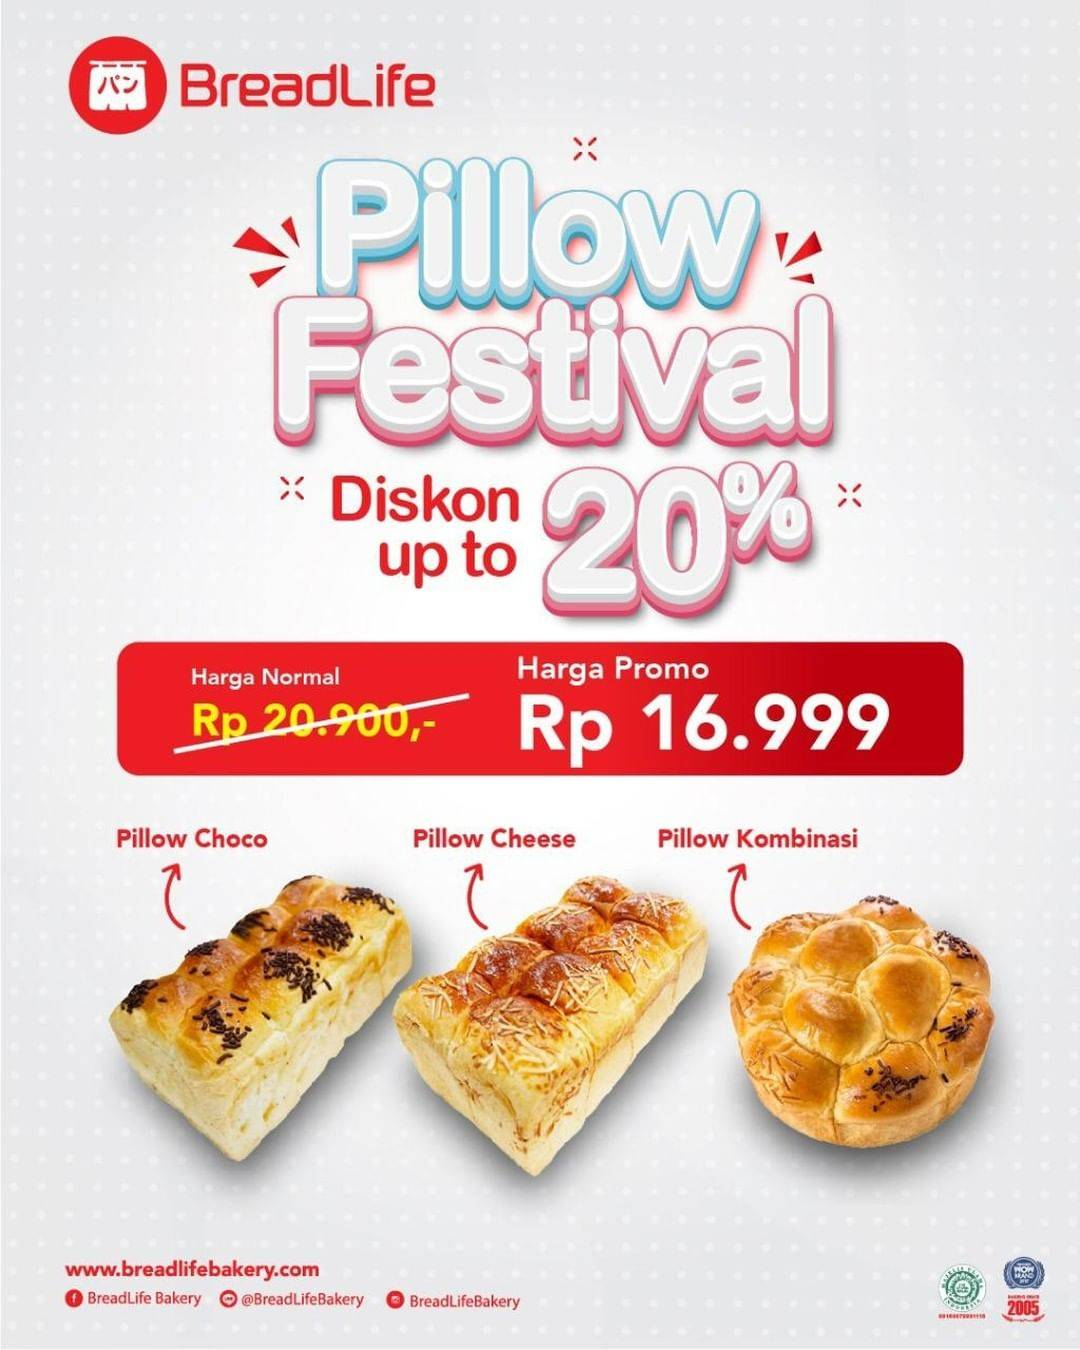 Diskon Breadlife Pillow Festival Discount Up To 20% Off